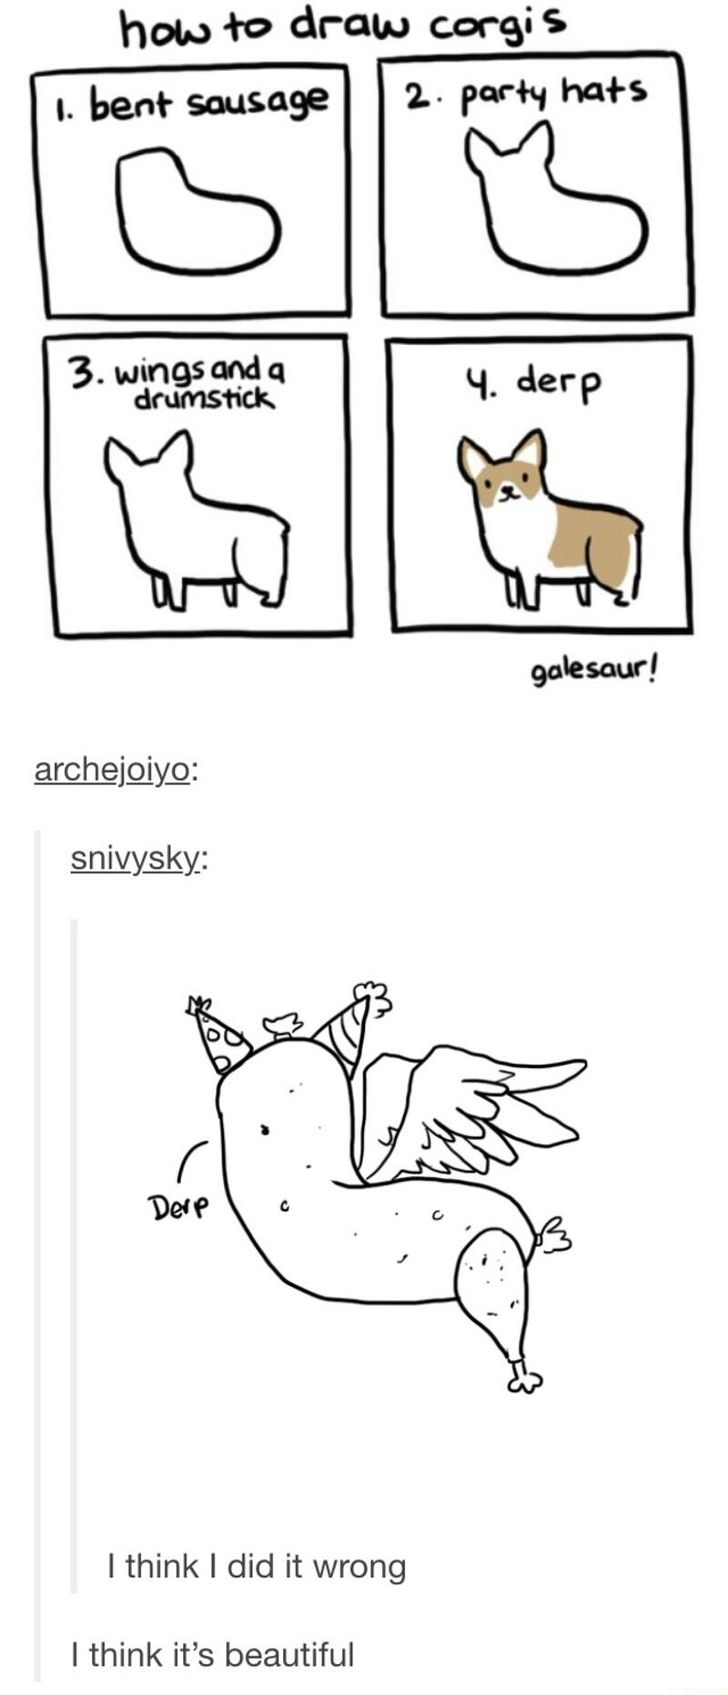 How to draw corgis